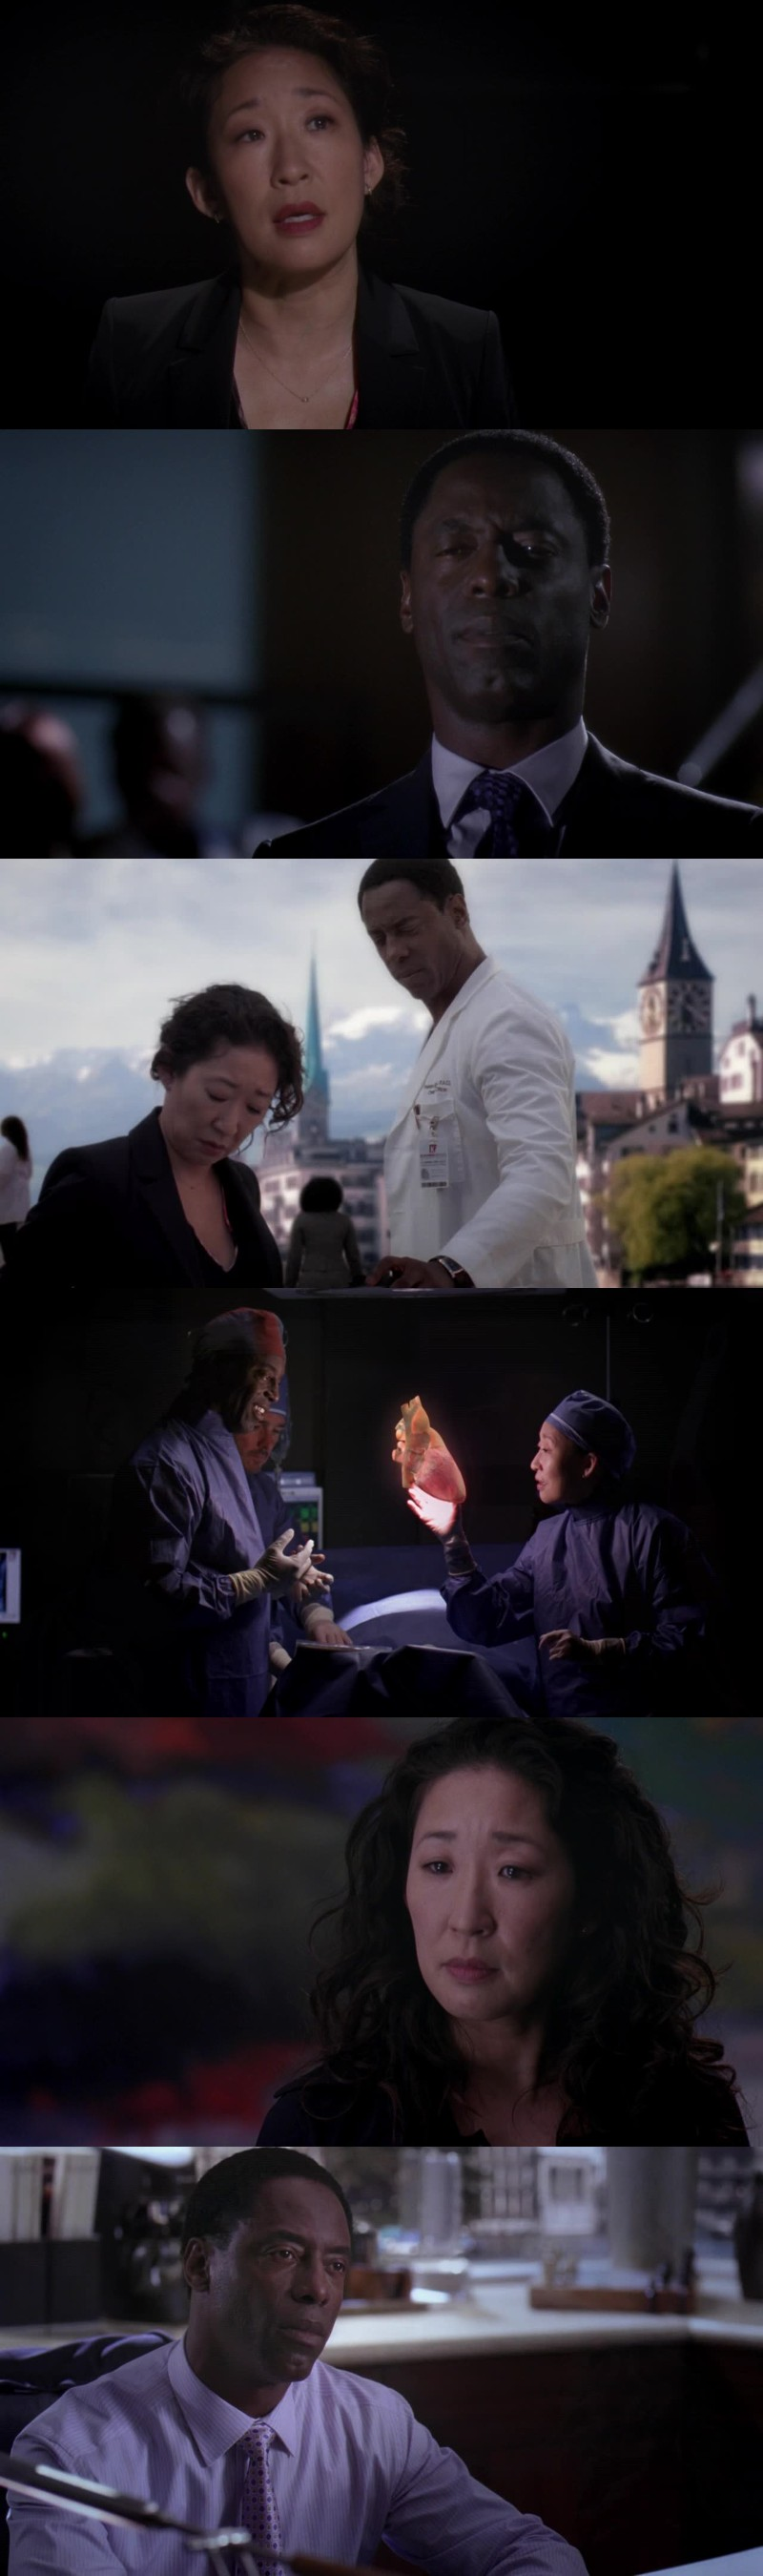 After Burke leaving, I did checked if he appears again in an episode and i was expecting this so much, really. I liked him so much before what he did to Cristina but even after all I cant hate him. (I just hate his mom) I cried all over the episode, and in the end i cried even more. I was so anxious to see him but now Cristina is leaving, omg I'm not ready.